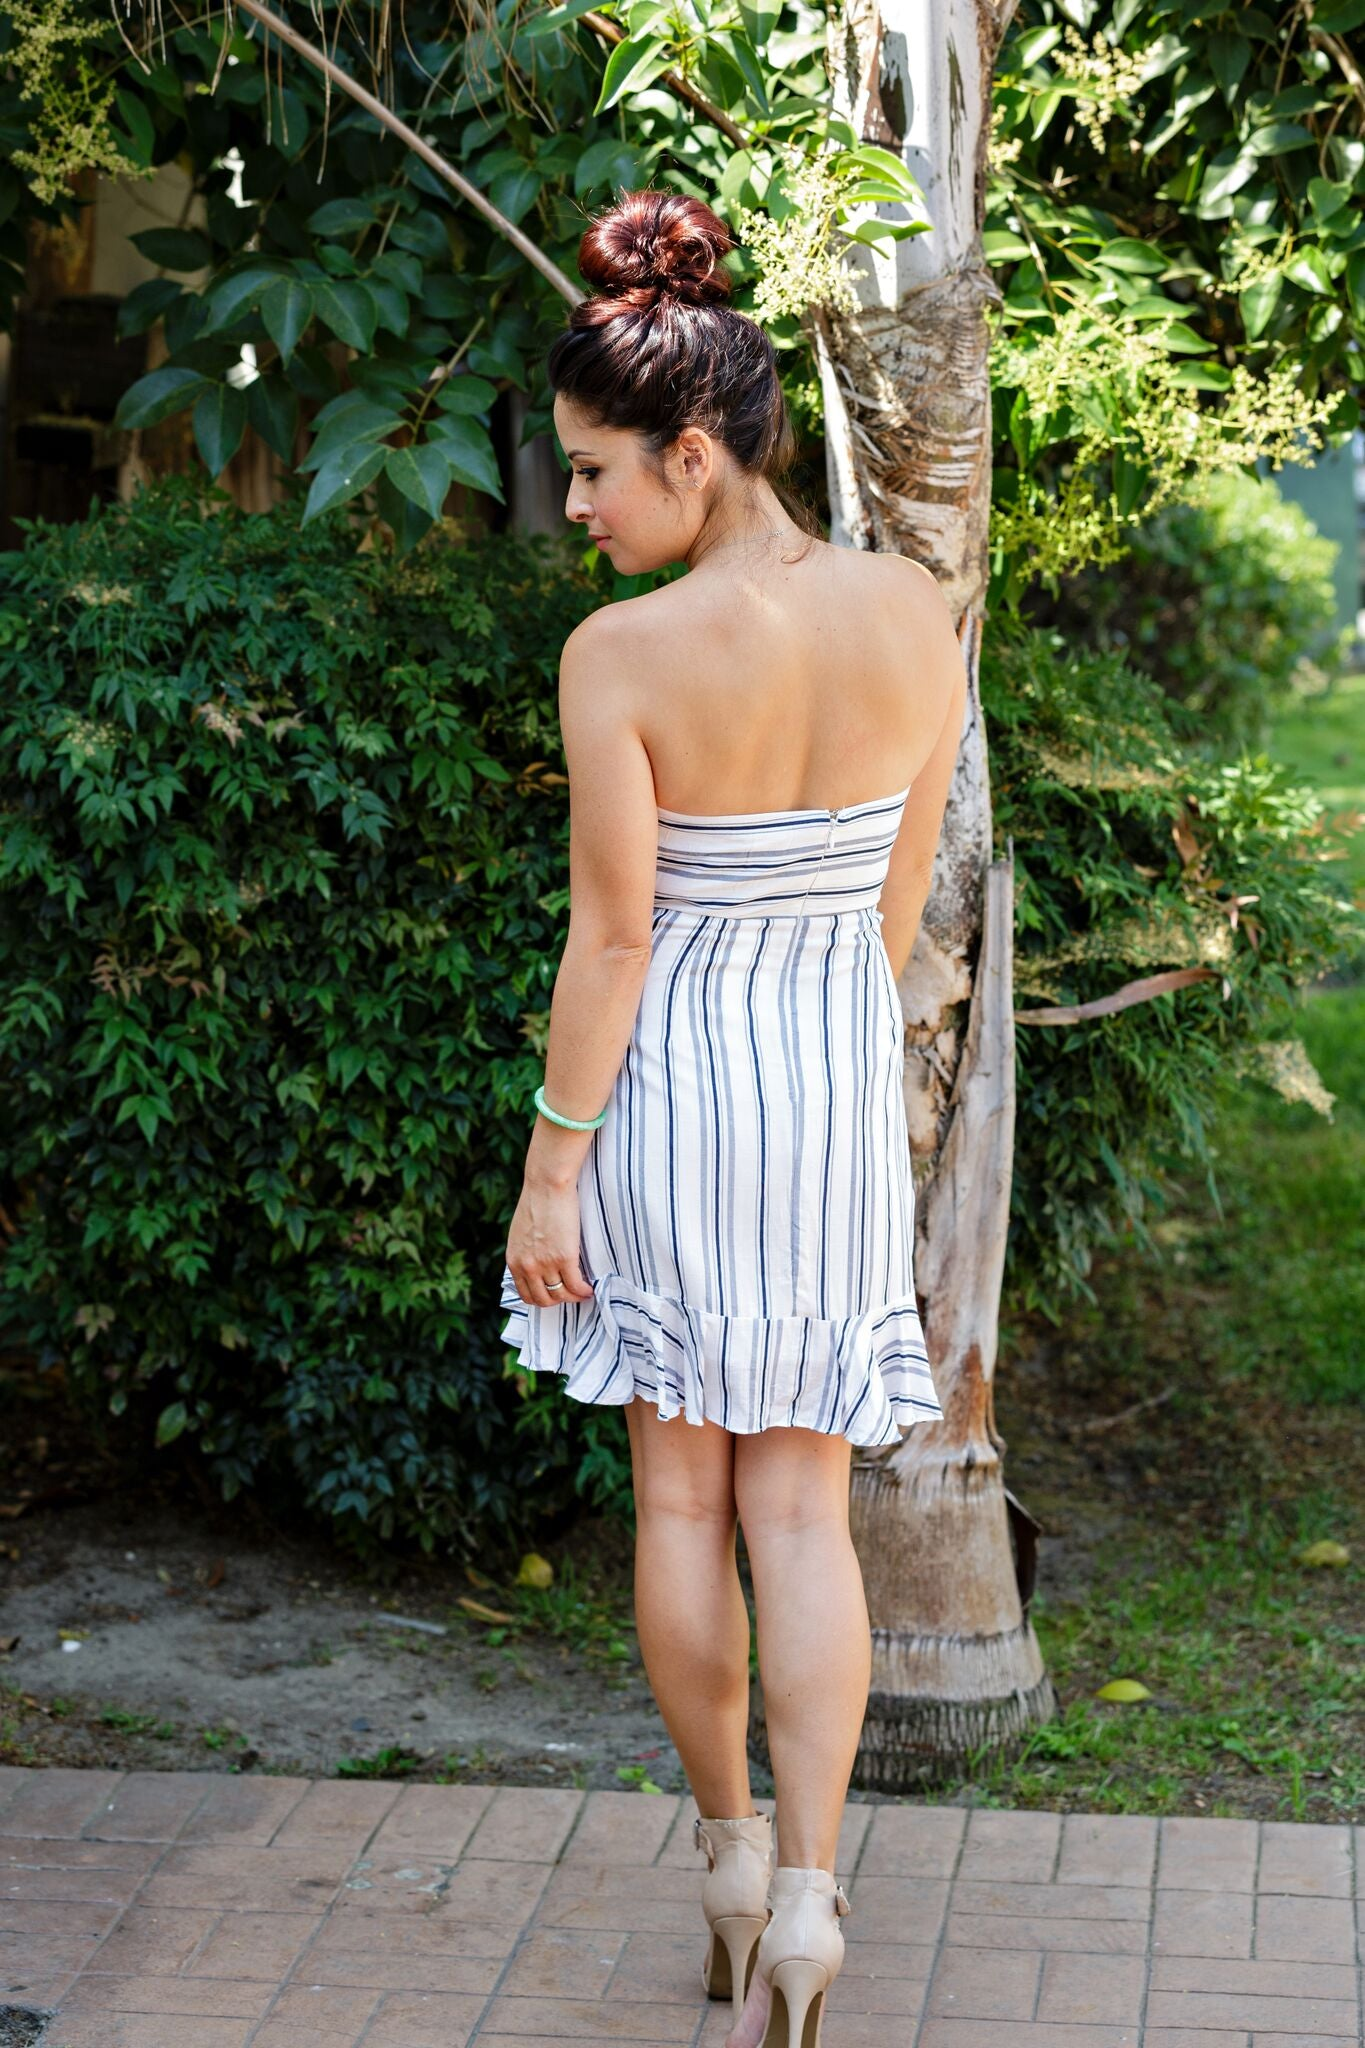 Cotton Candy White Navy Striped Strapless Dress - Ella J Boutique